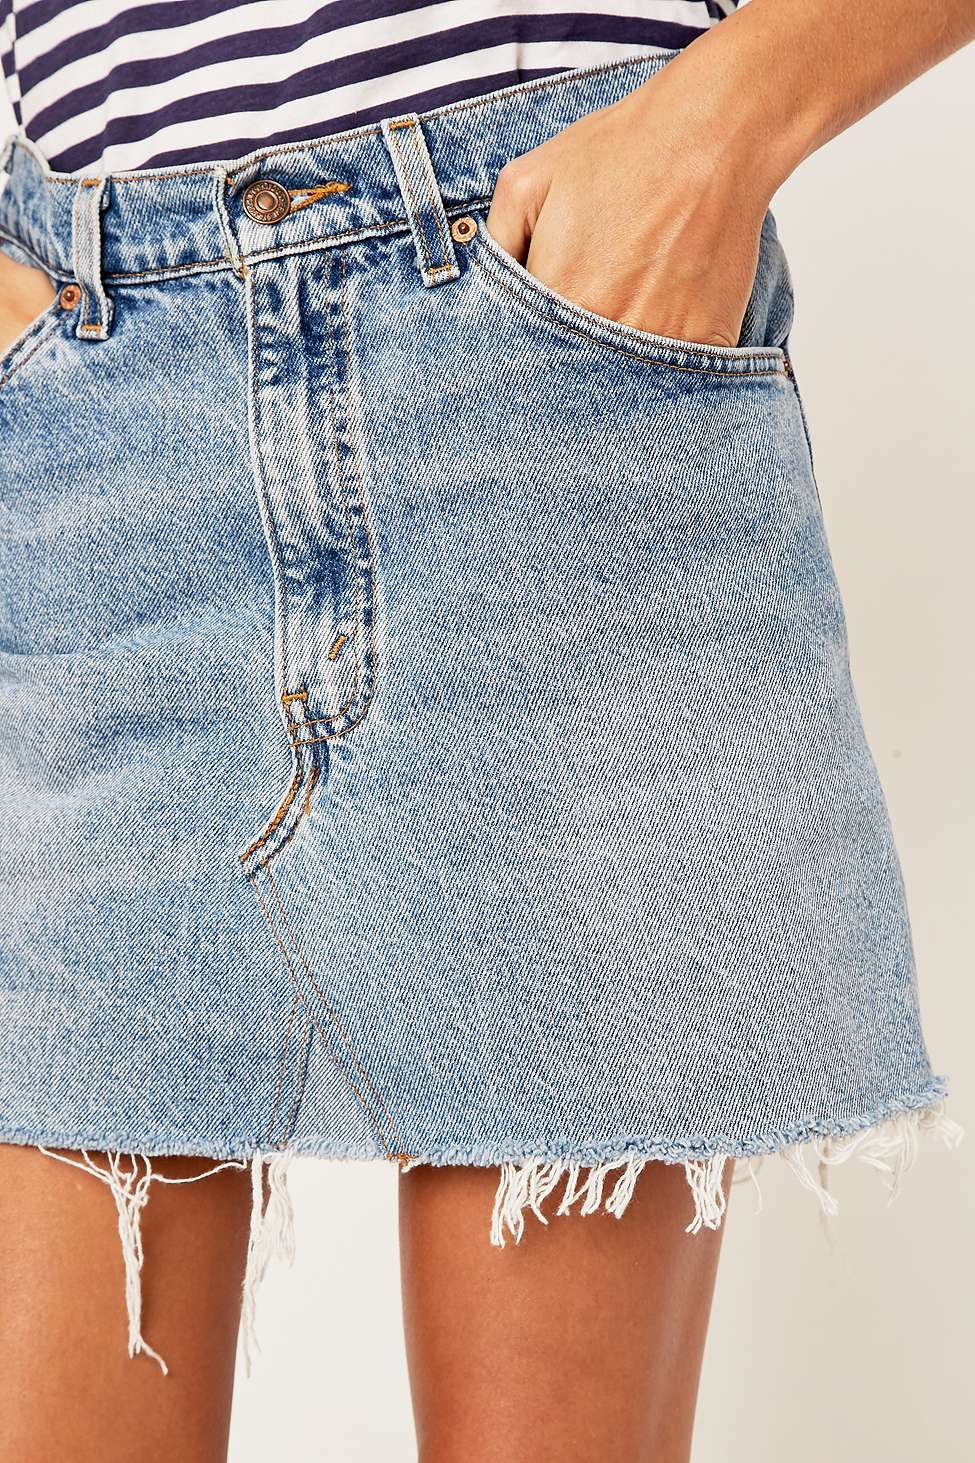 39adcca968 Urban Renewal Vintage Re-Made Levi's Denim Mini Skirt | Clothes ...